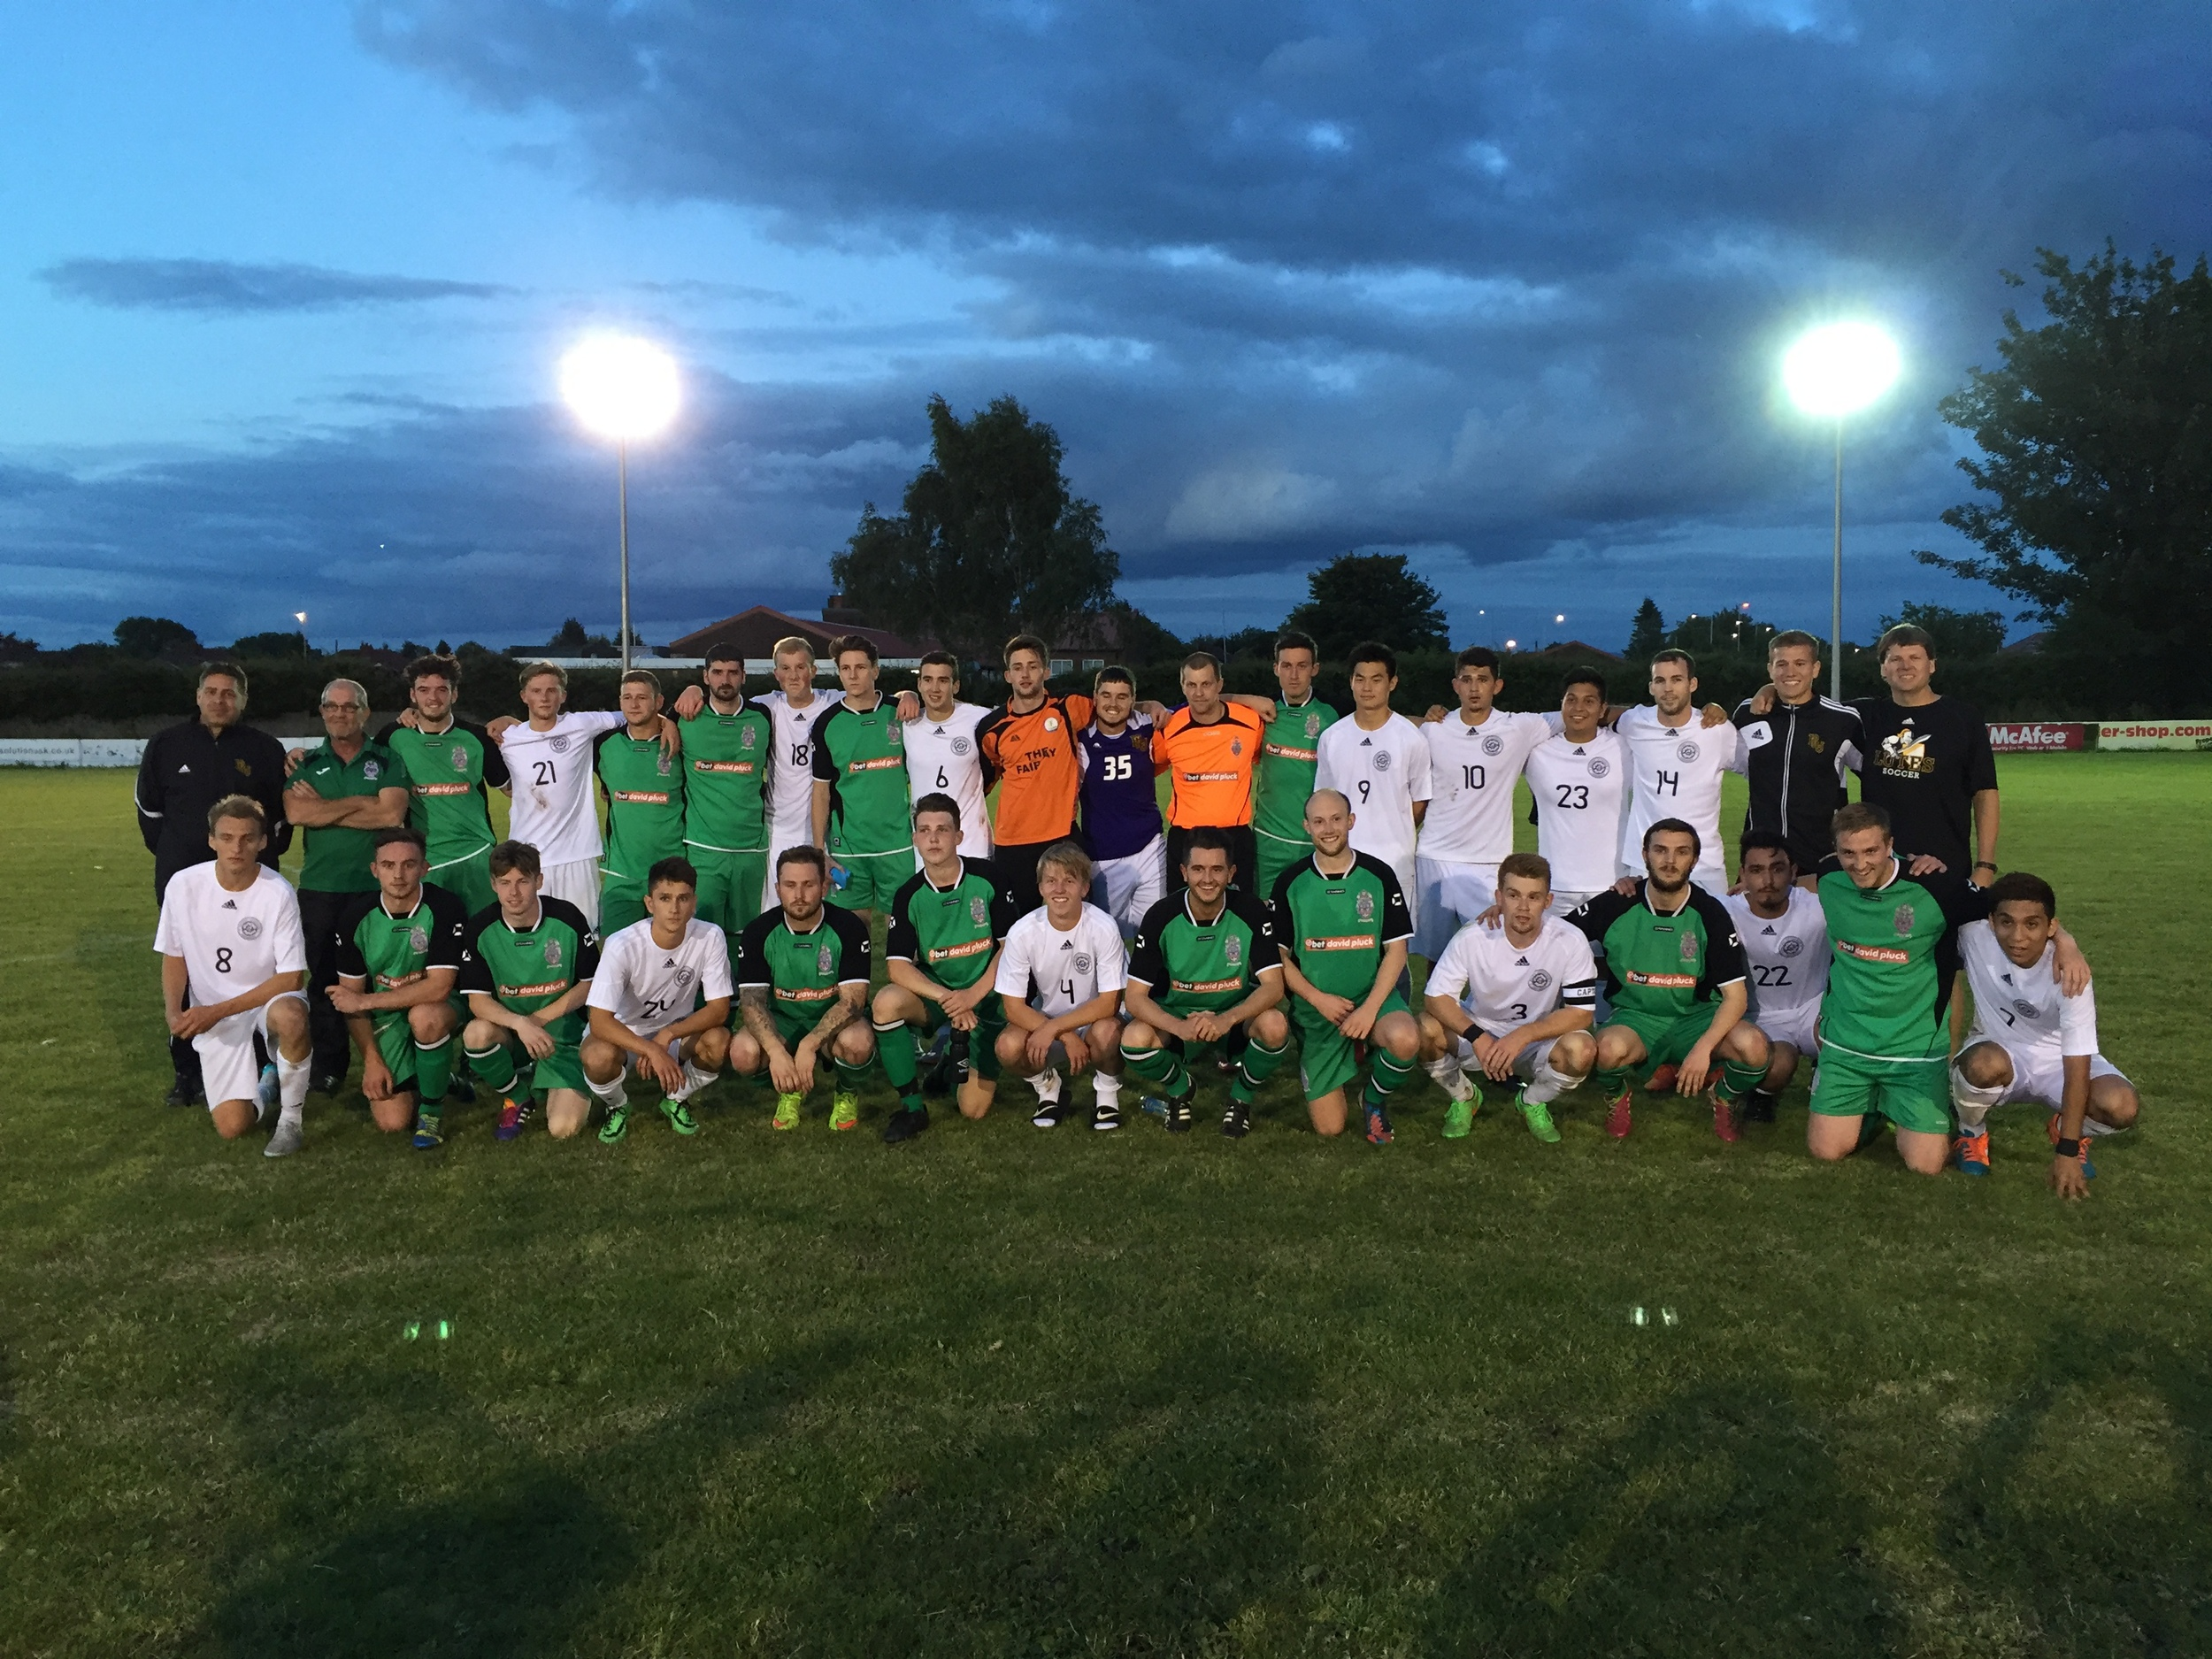 Both sides get together for a post-match photo